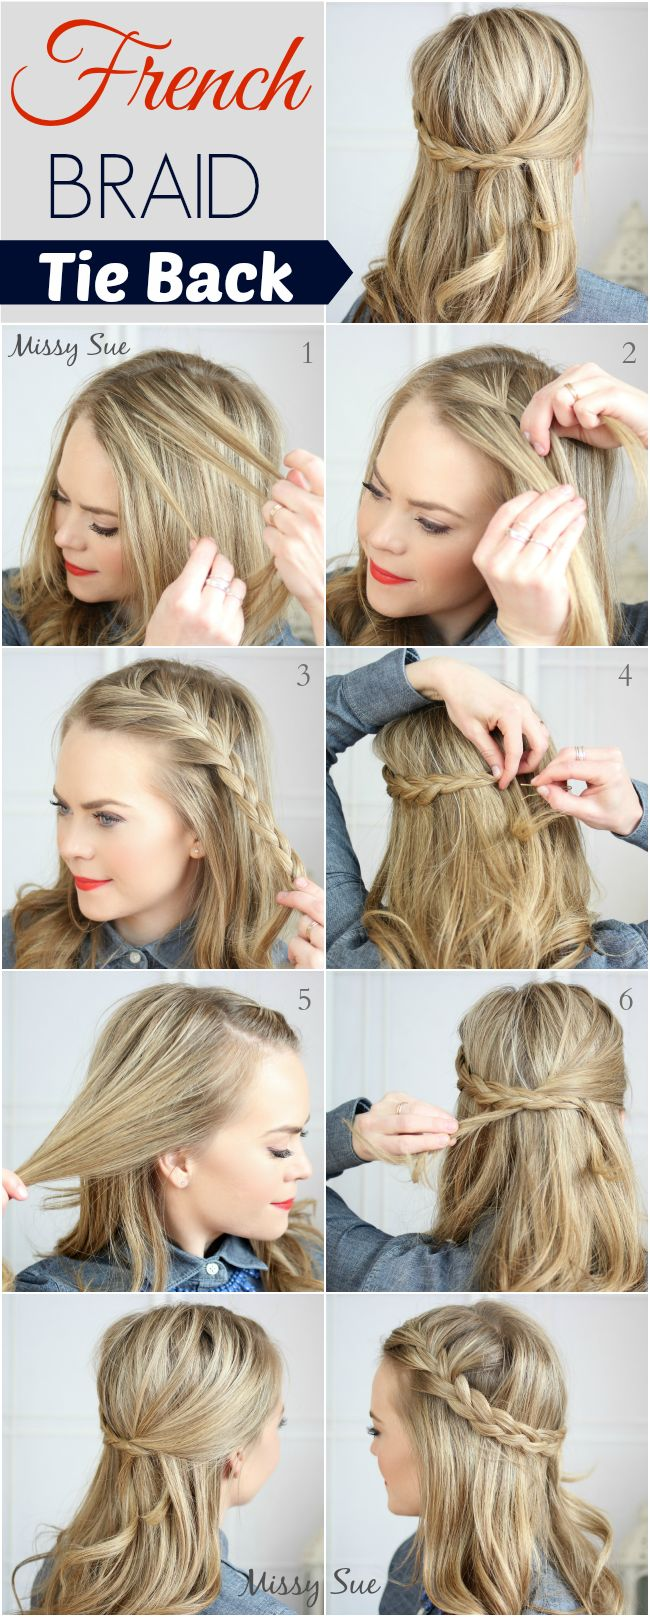 DIY French Braid Tie Back Pictures, Photos, and Images for Facebook, Tumblr, Pinterest, and Twitter